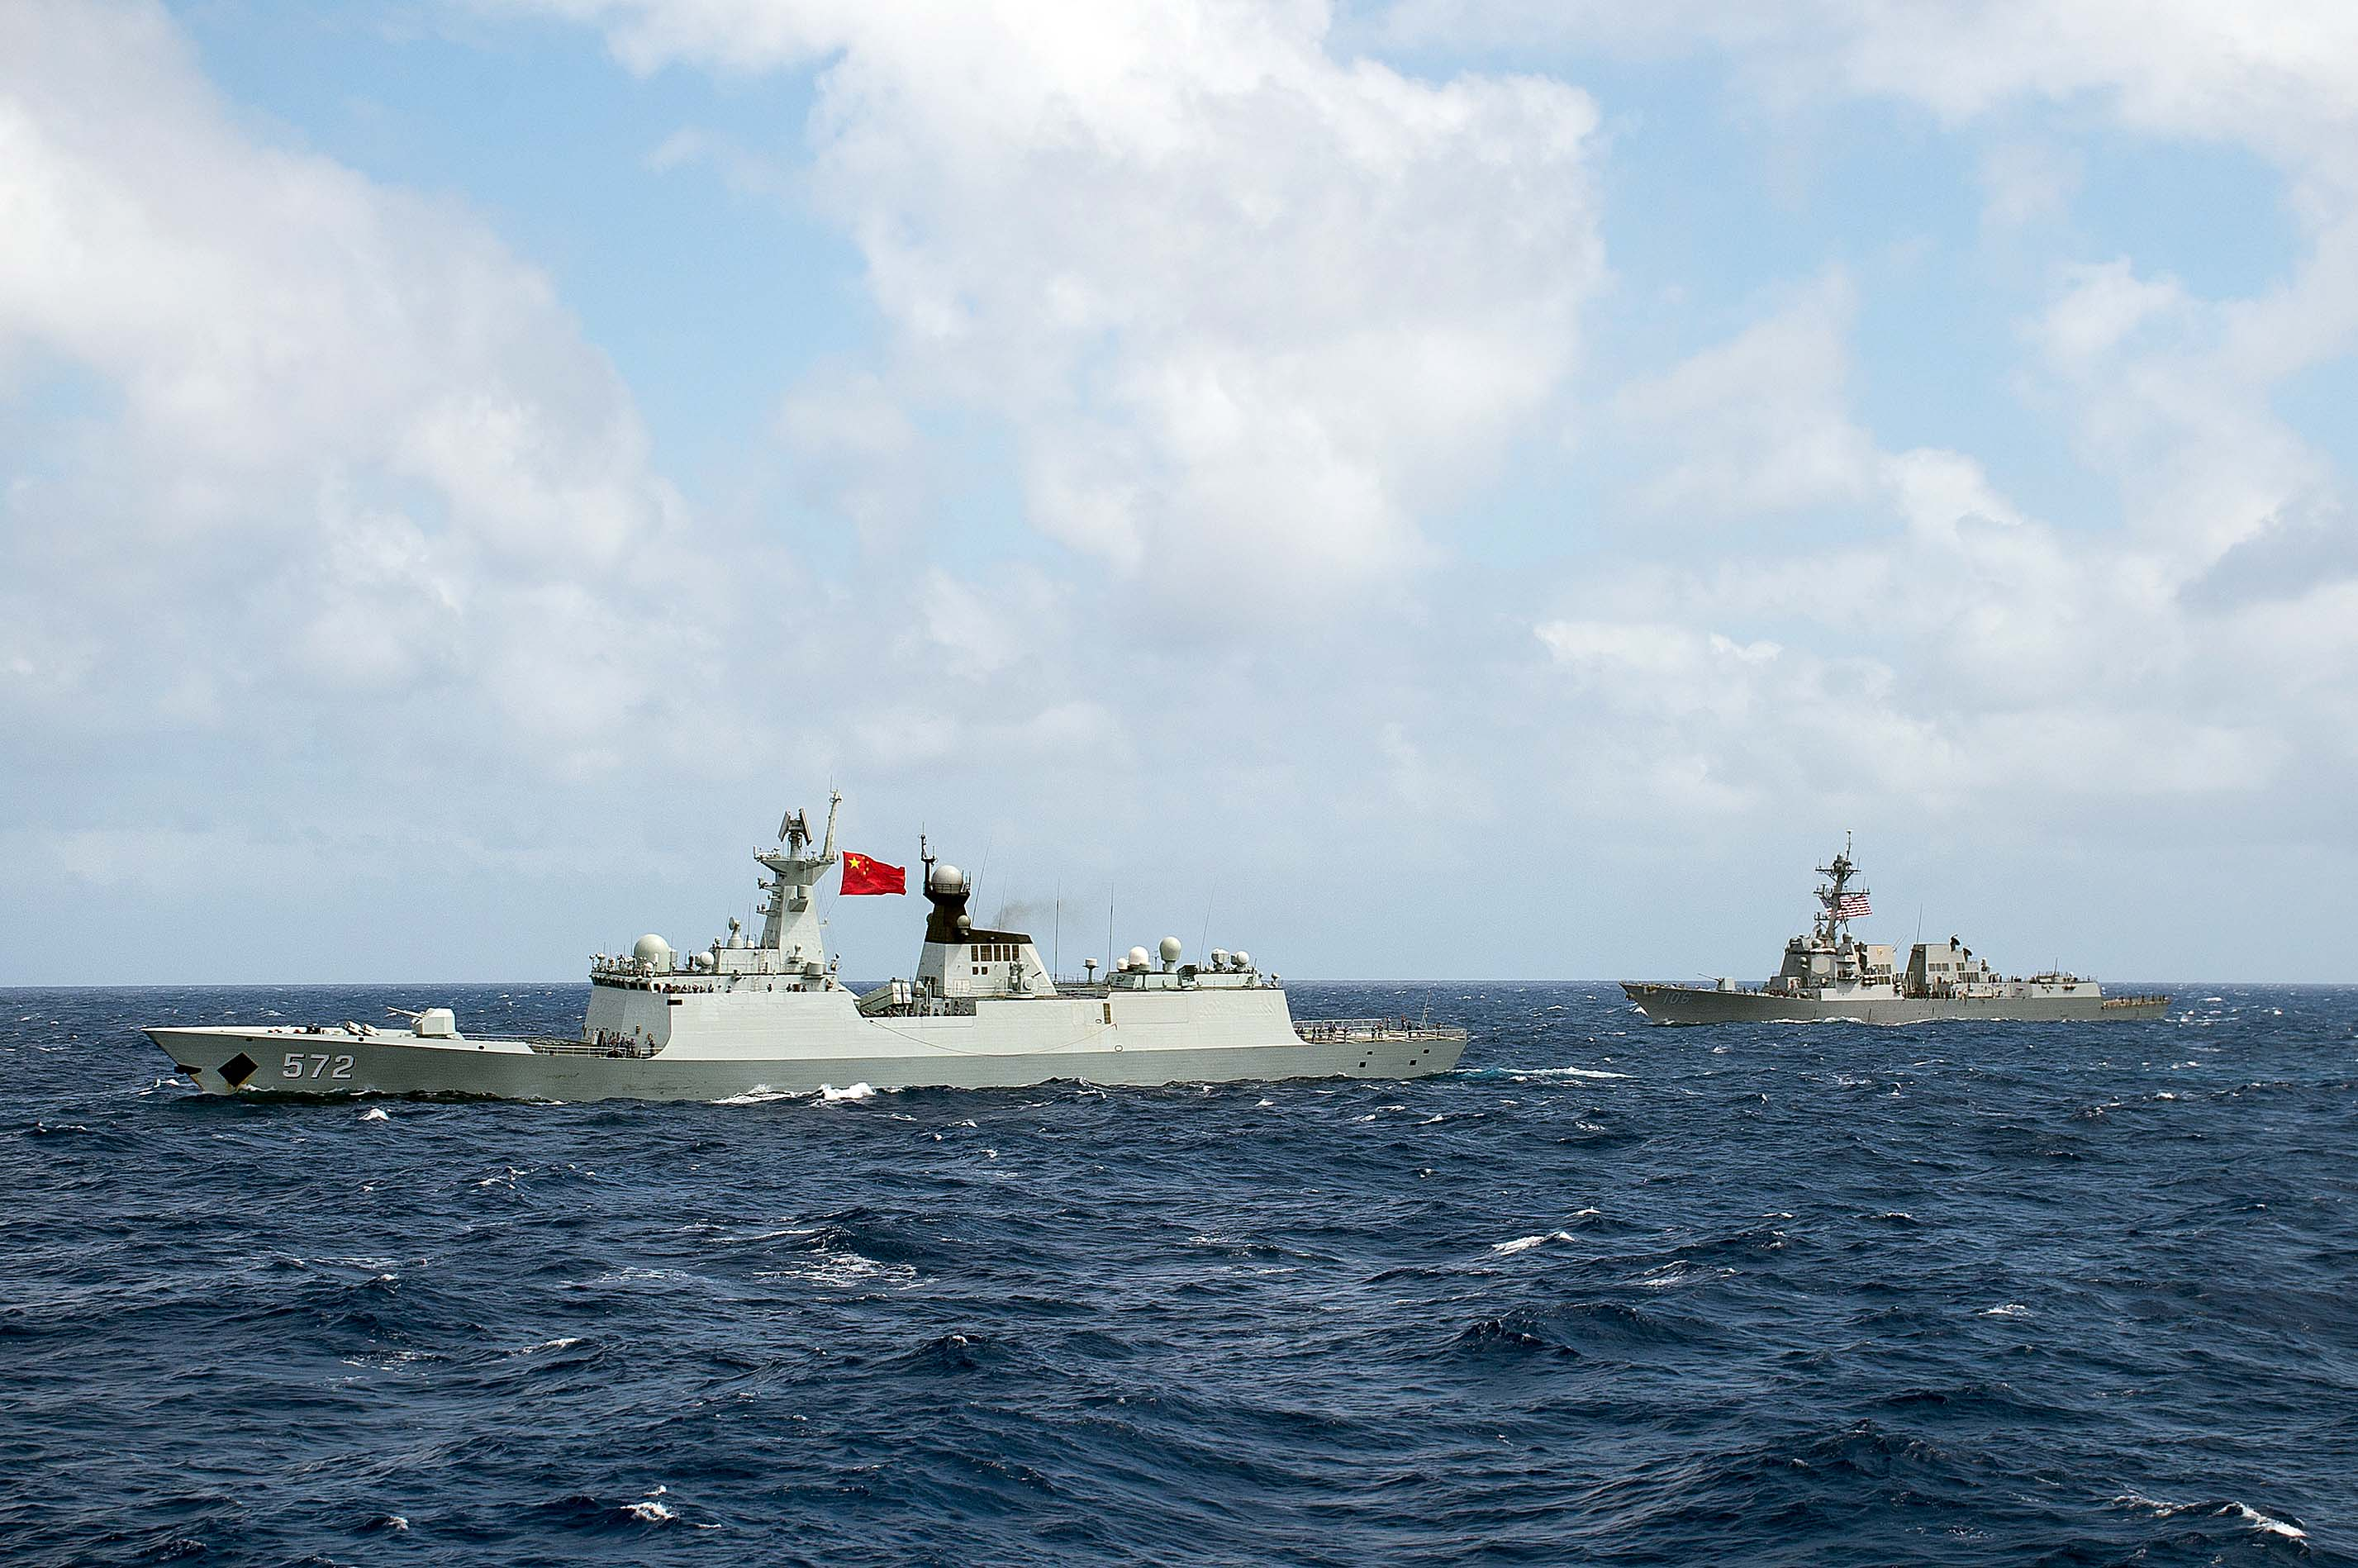 The People's Republic of China Chinese Navy multi-role frigate Hengshui (572) and the guided-missile destroyer USS Stockdale (DDG 106) transit in formation during Rim of the Pacific 2016 on July 28, 2016. US Navy photo.